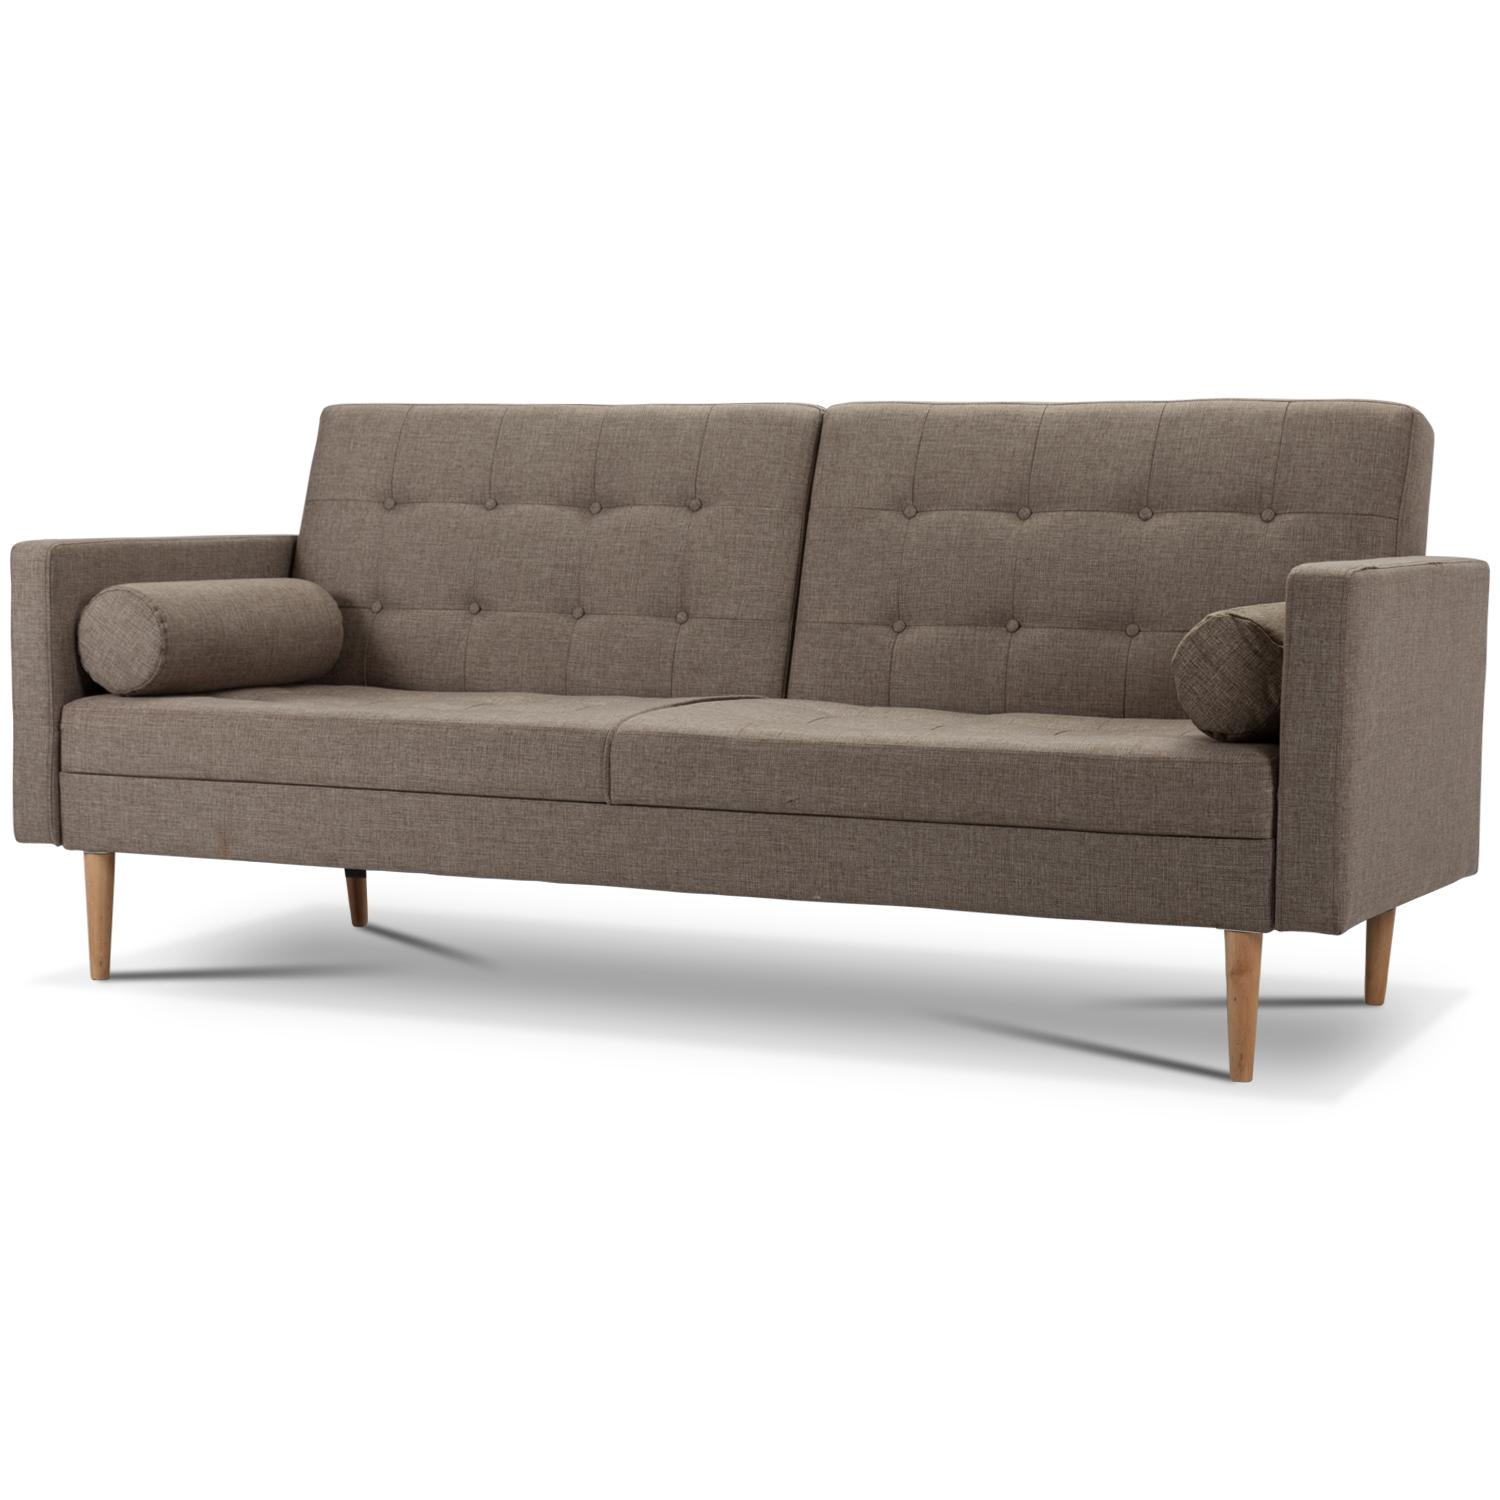 3 Seater Sofa Bed Sale - Fjellkjeden in 3 Seater Sofas for Sale